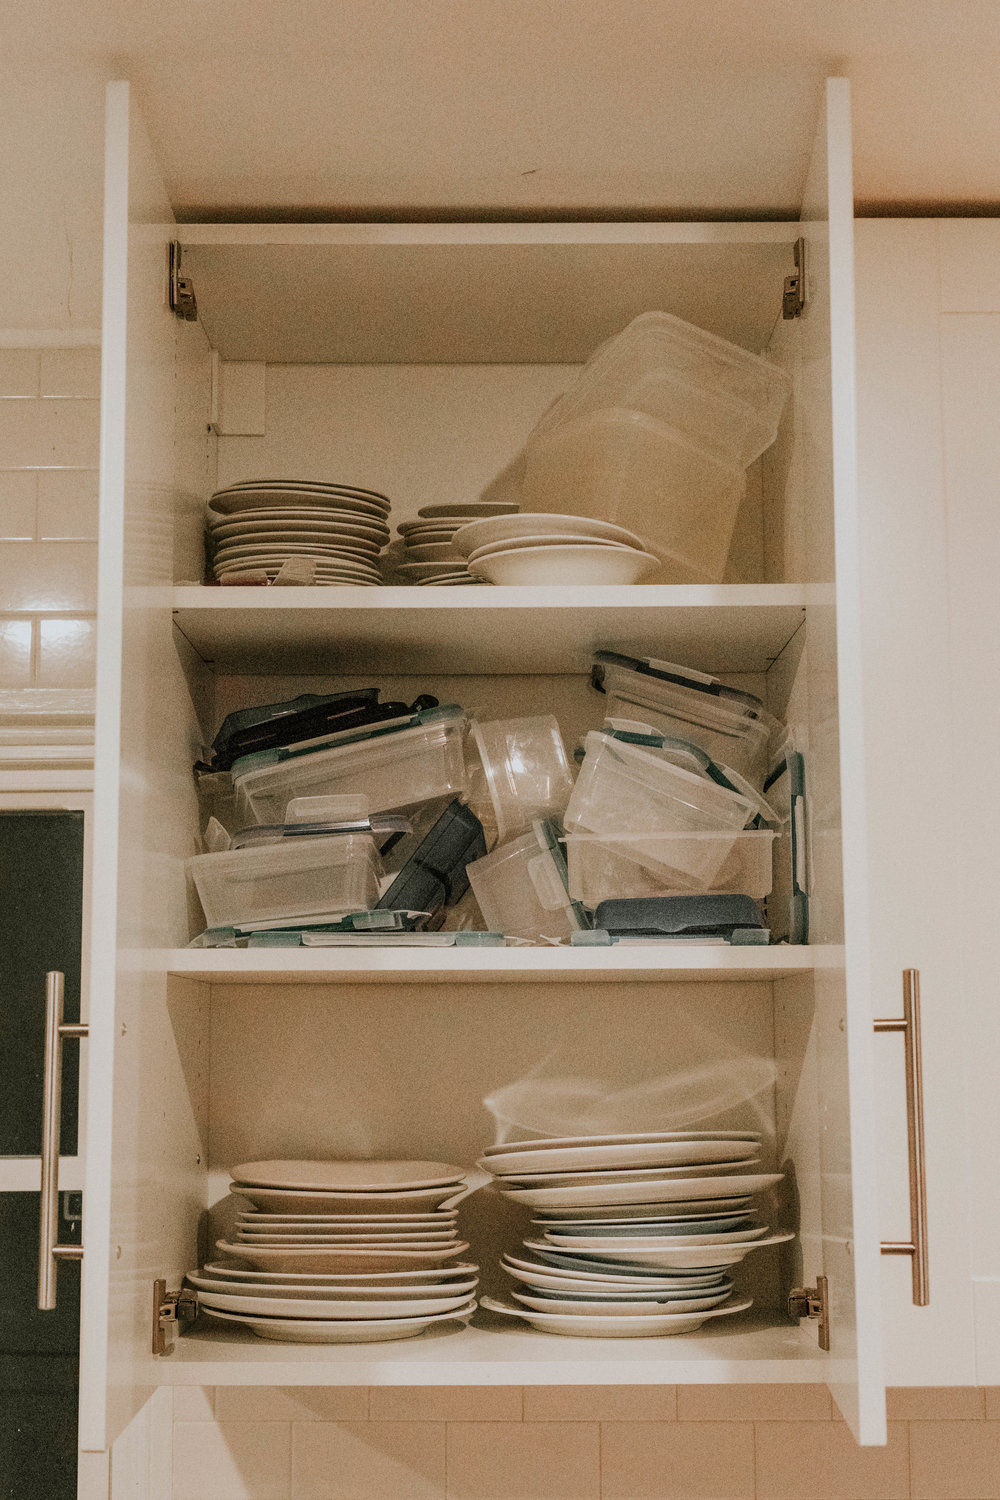 BEFORE TUPPERWARE ORGANIZATION